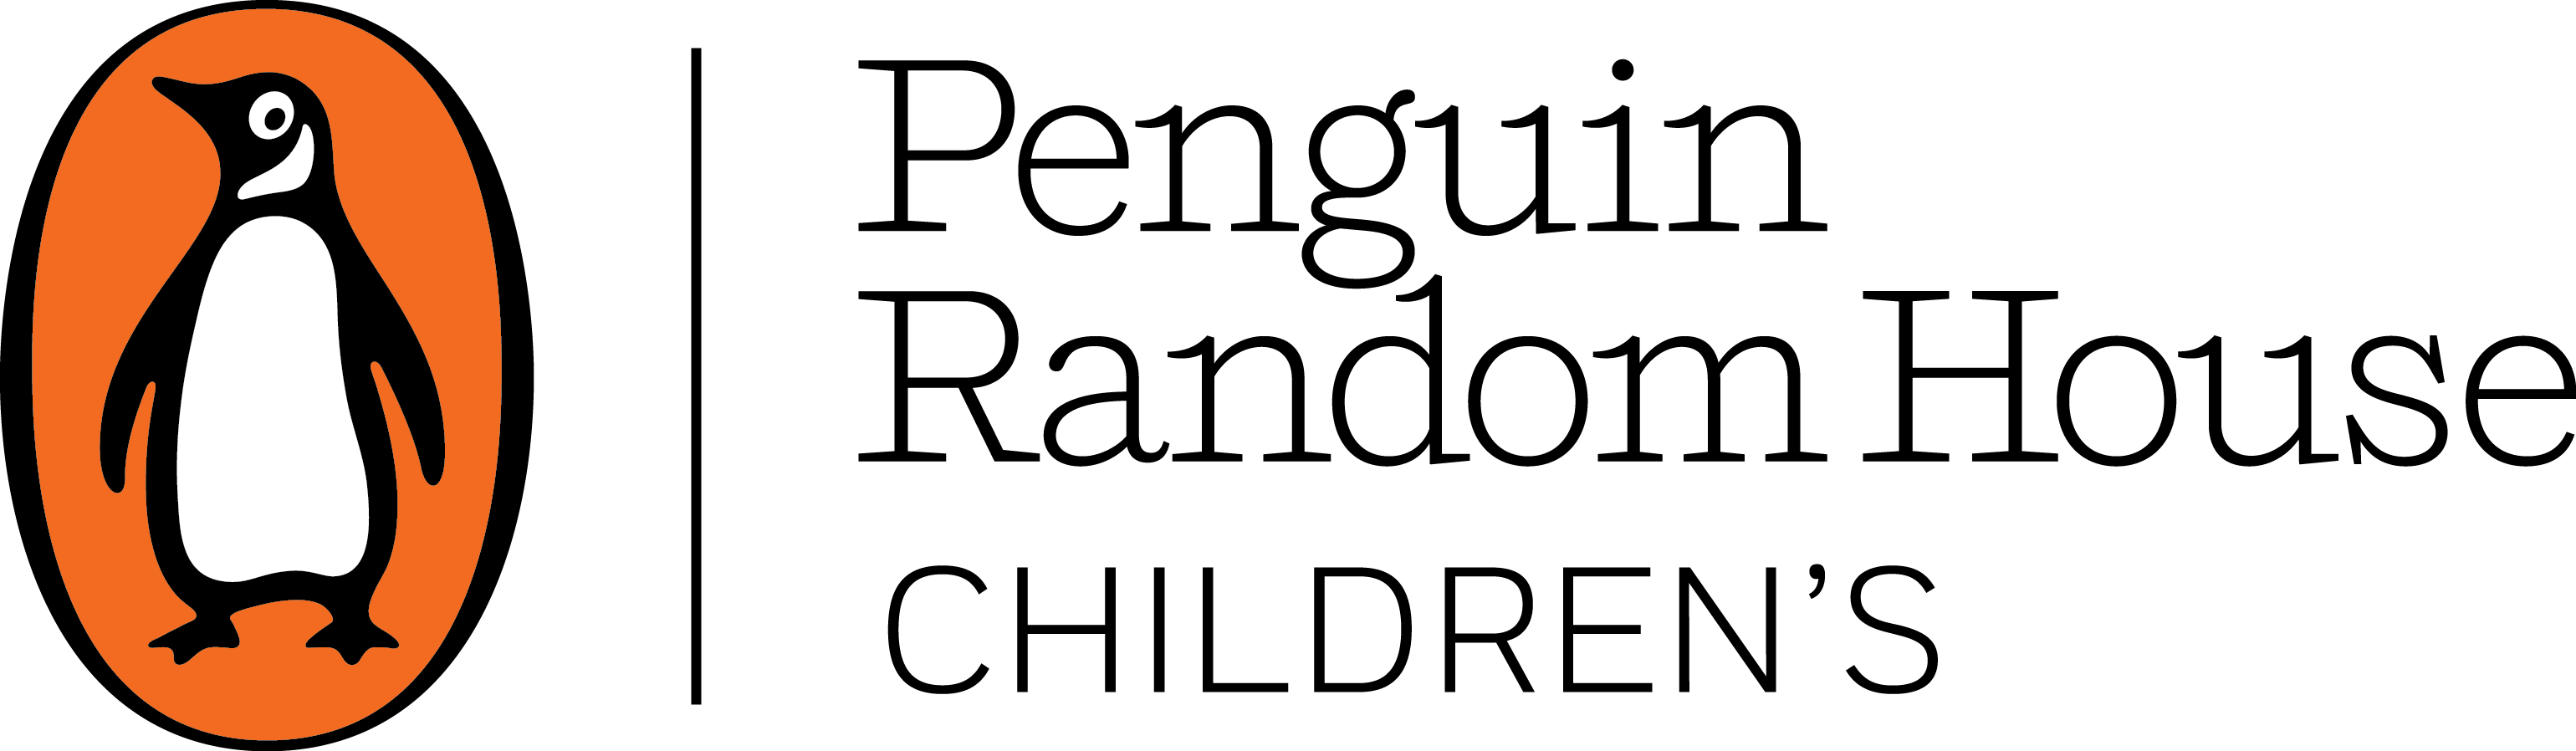 Penguin books logo png. Random house children s